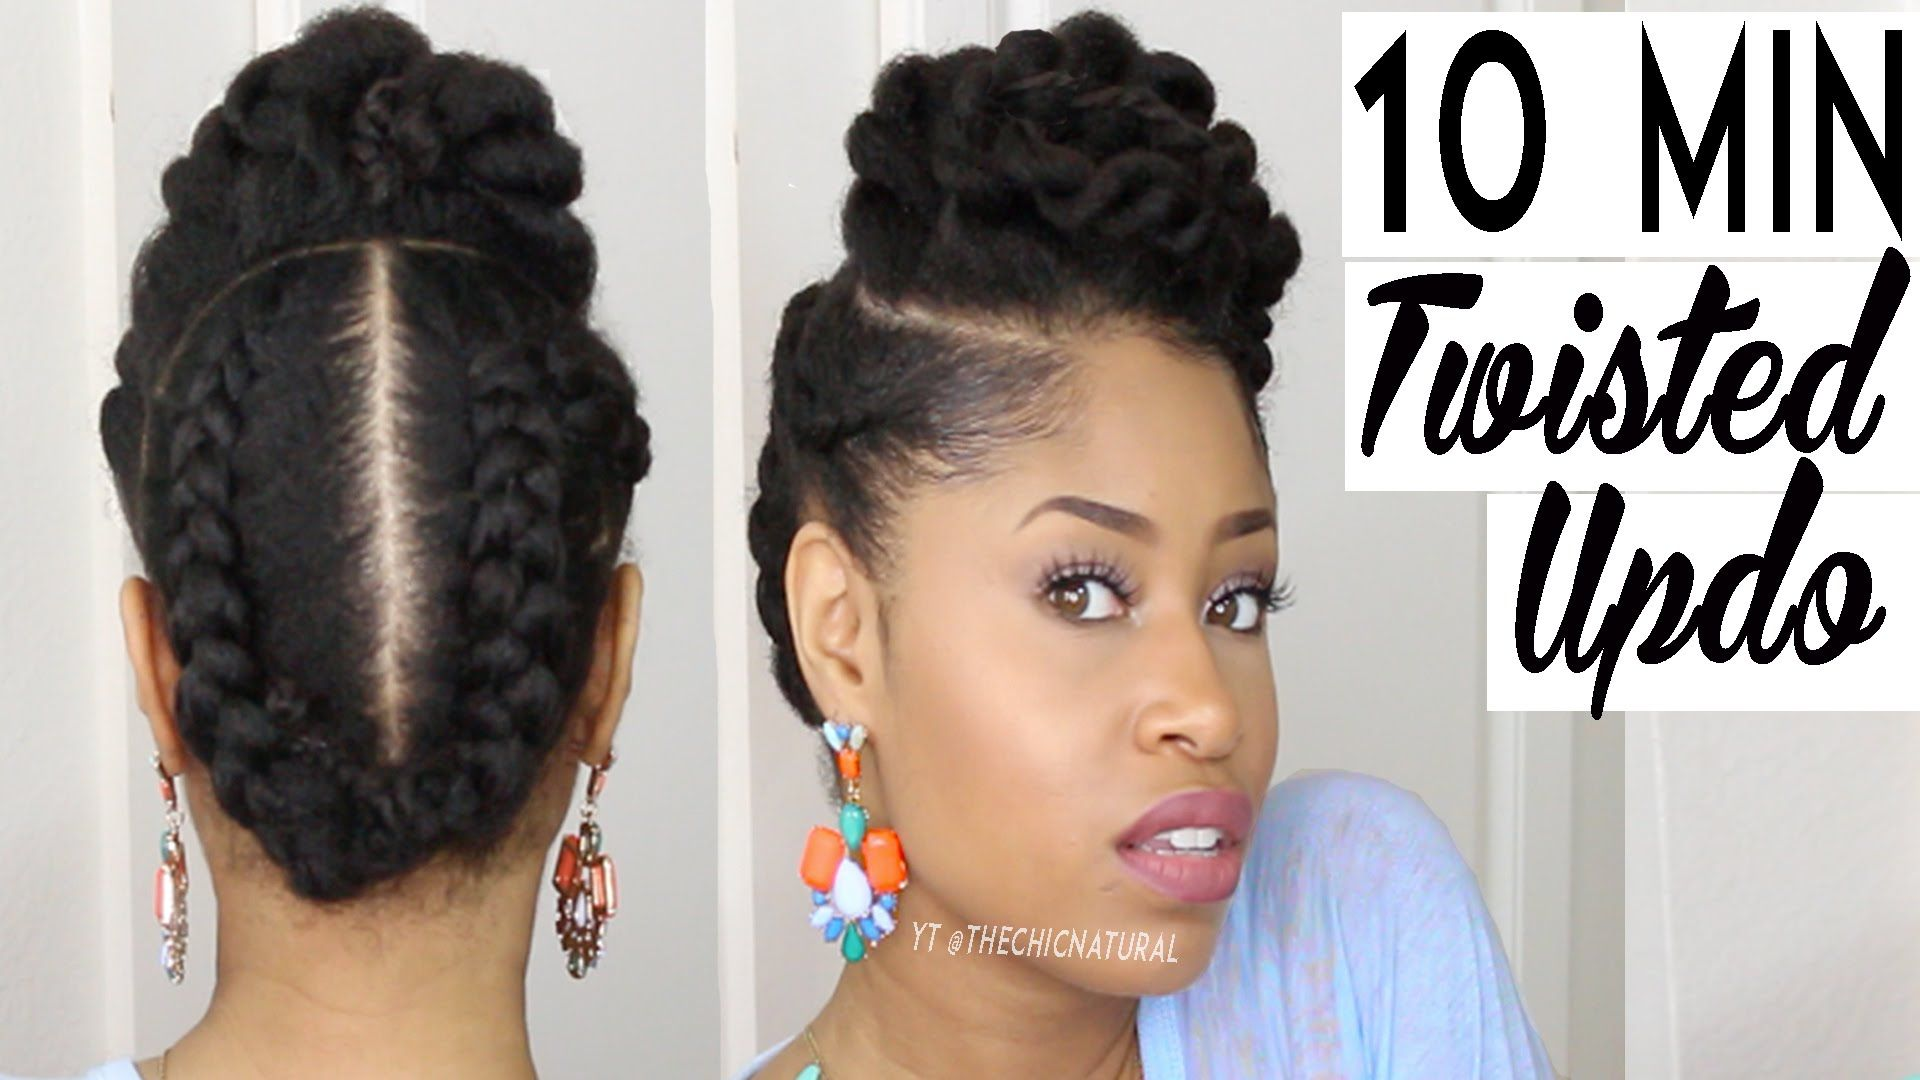 Superb 1000 Images About Hair On Pinterest Braid Designs Updo And Hairstyles For Men Maxibearus